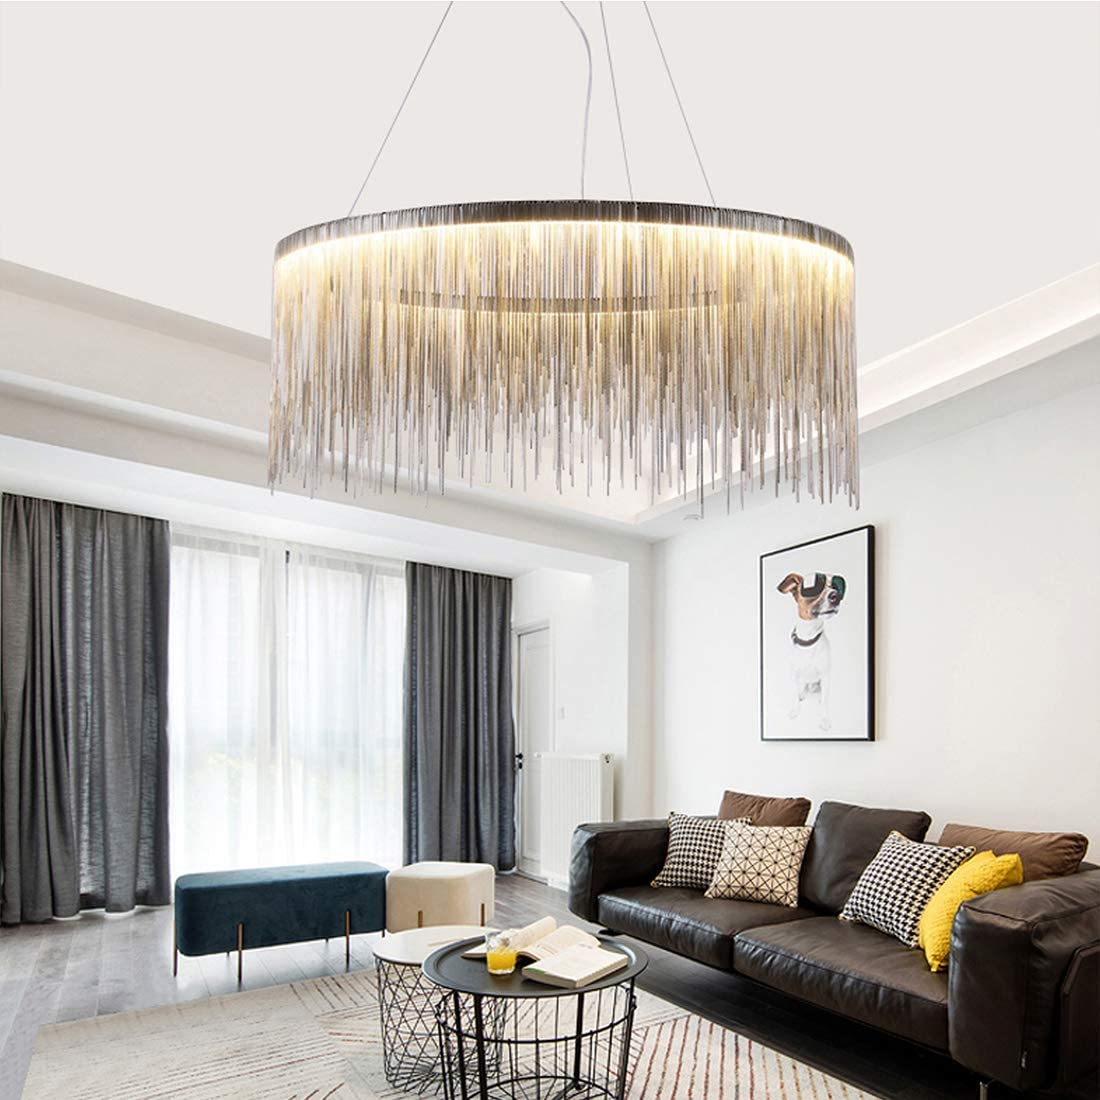 Moooni Modern Round Aluminum Tassel Linear Chandelier Pendant Ceiling Light Fixture for Bedroom Dining Room Kitchen Island Over Table W32 x H 14